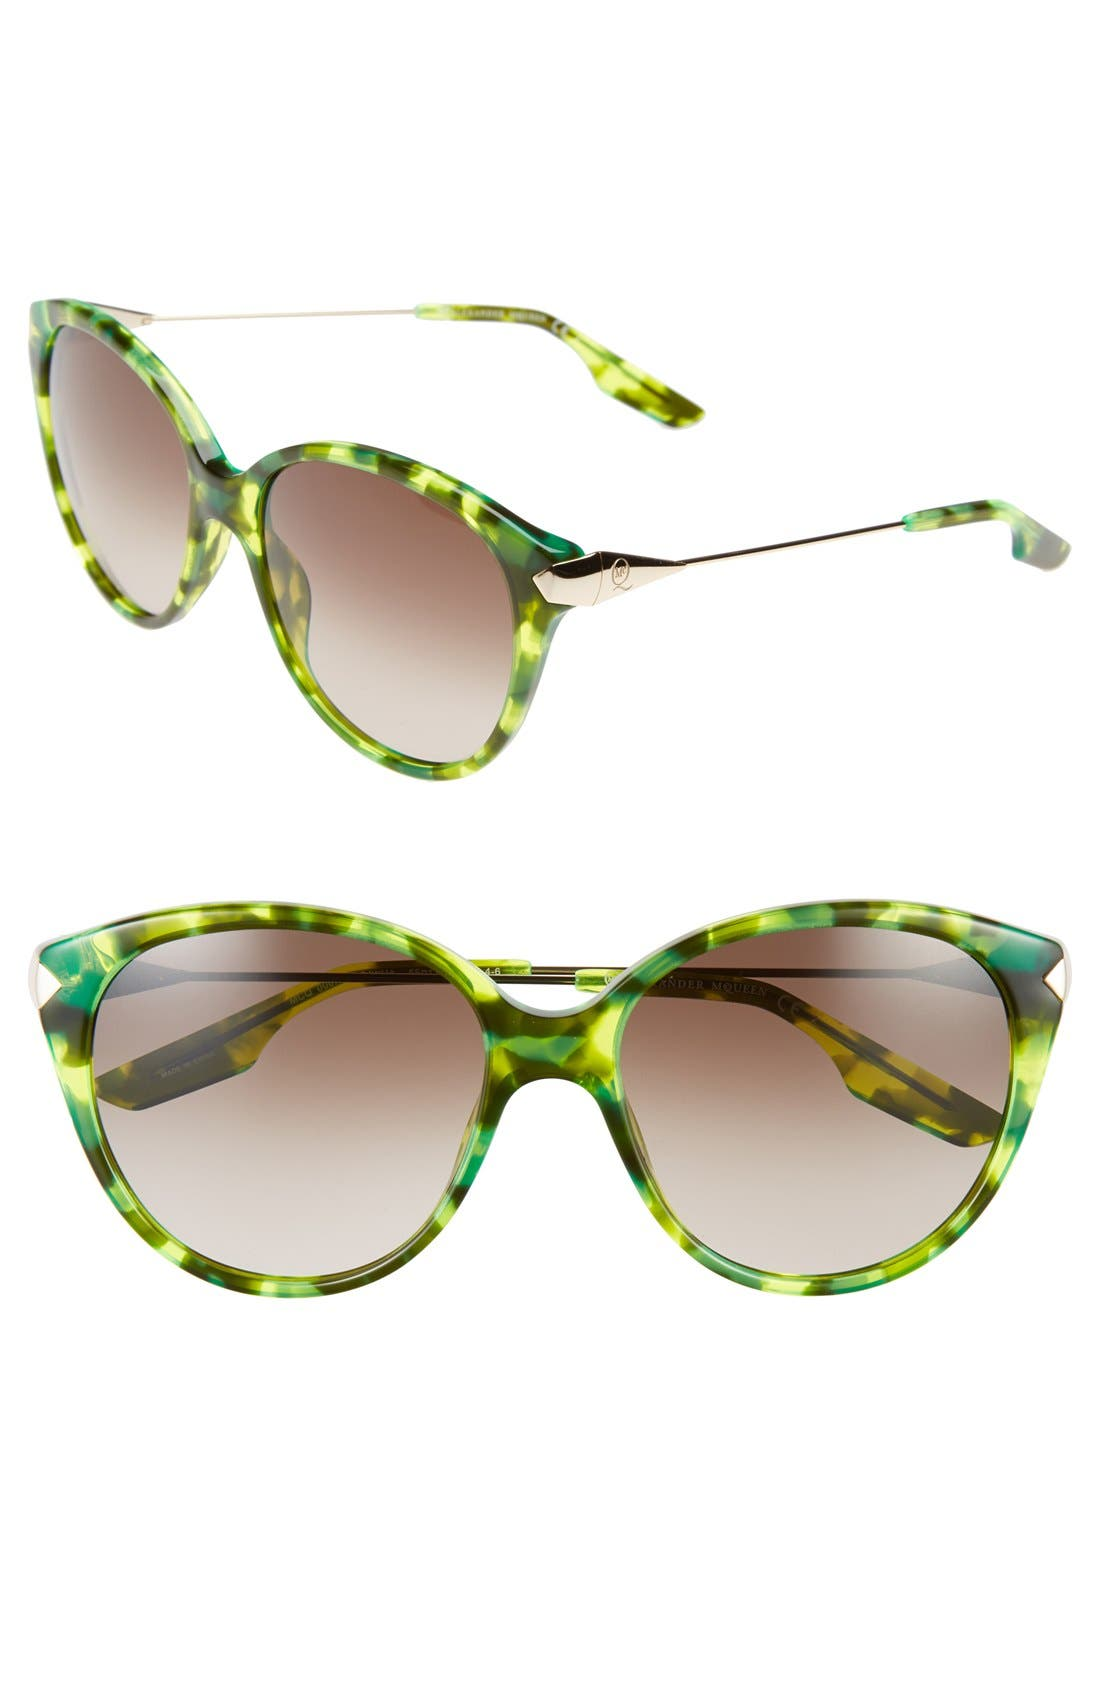 Alternate Image 1 Selected - McQ by Alexander McQueen 55mm Retro Sunglasses